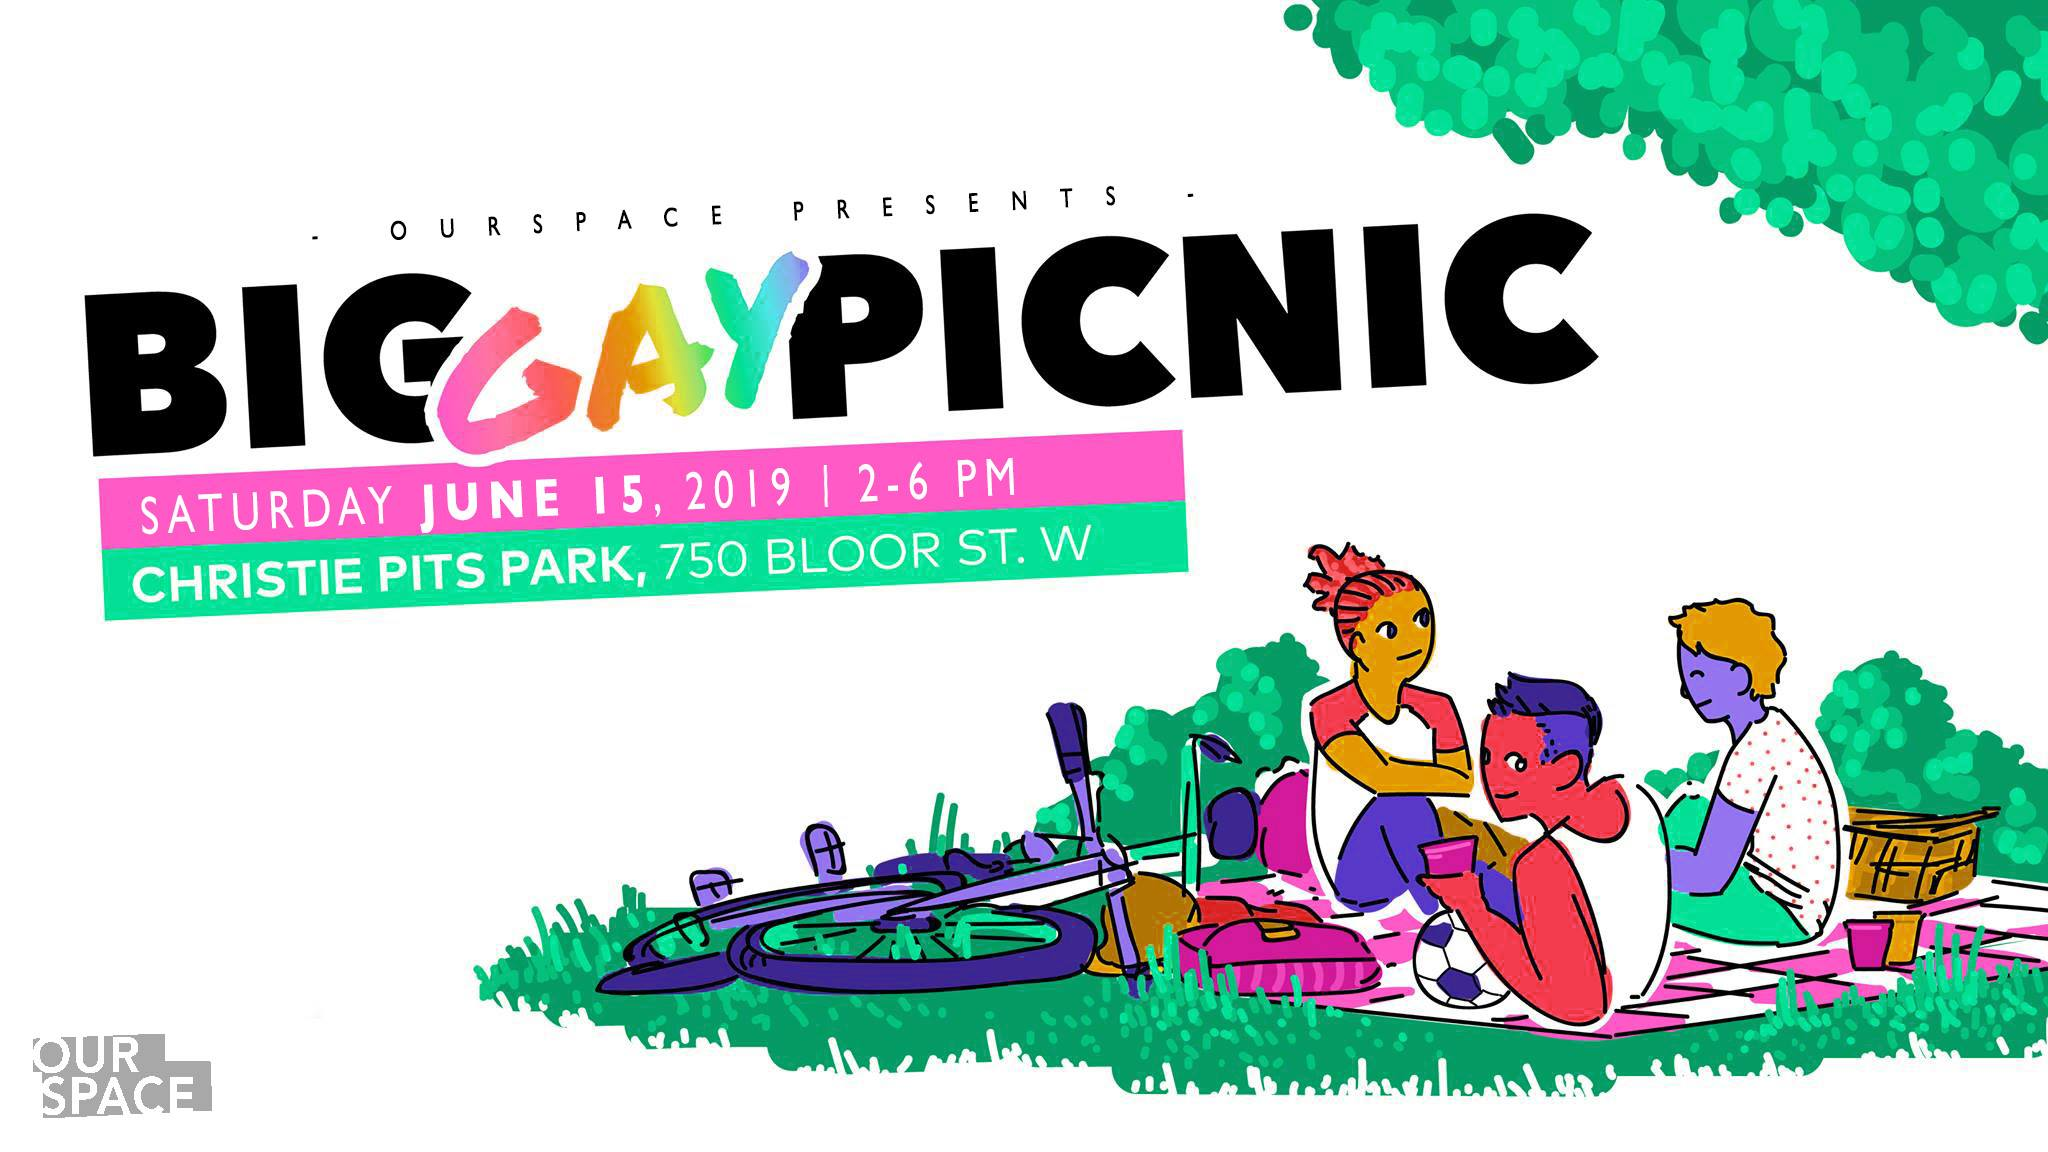 Big-Gay-Picnic-2019-edition!